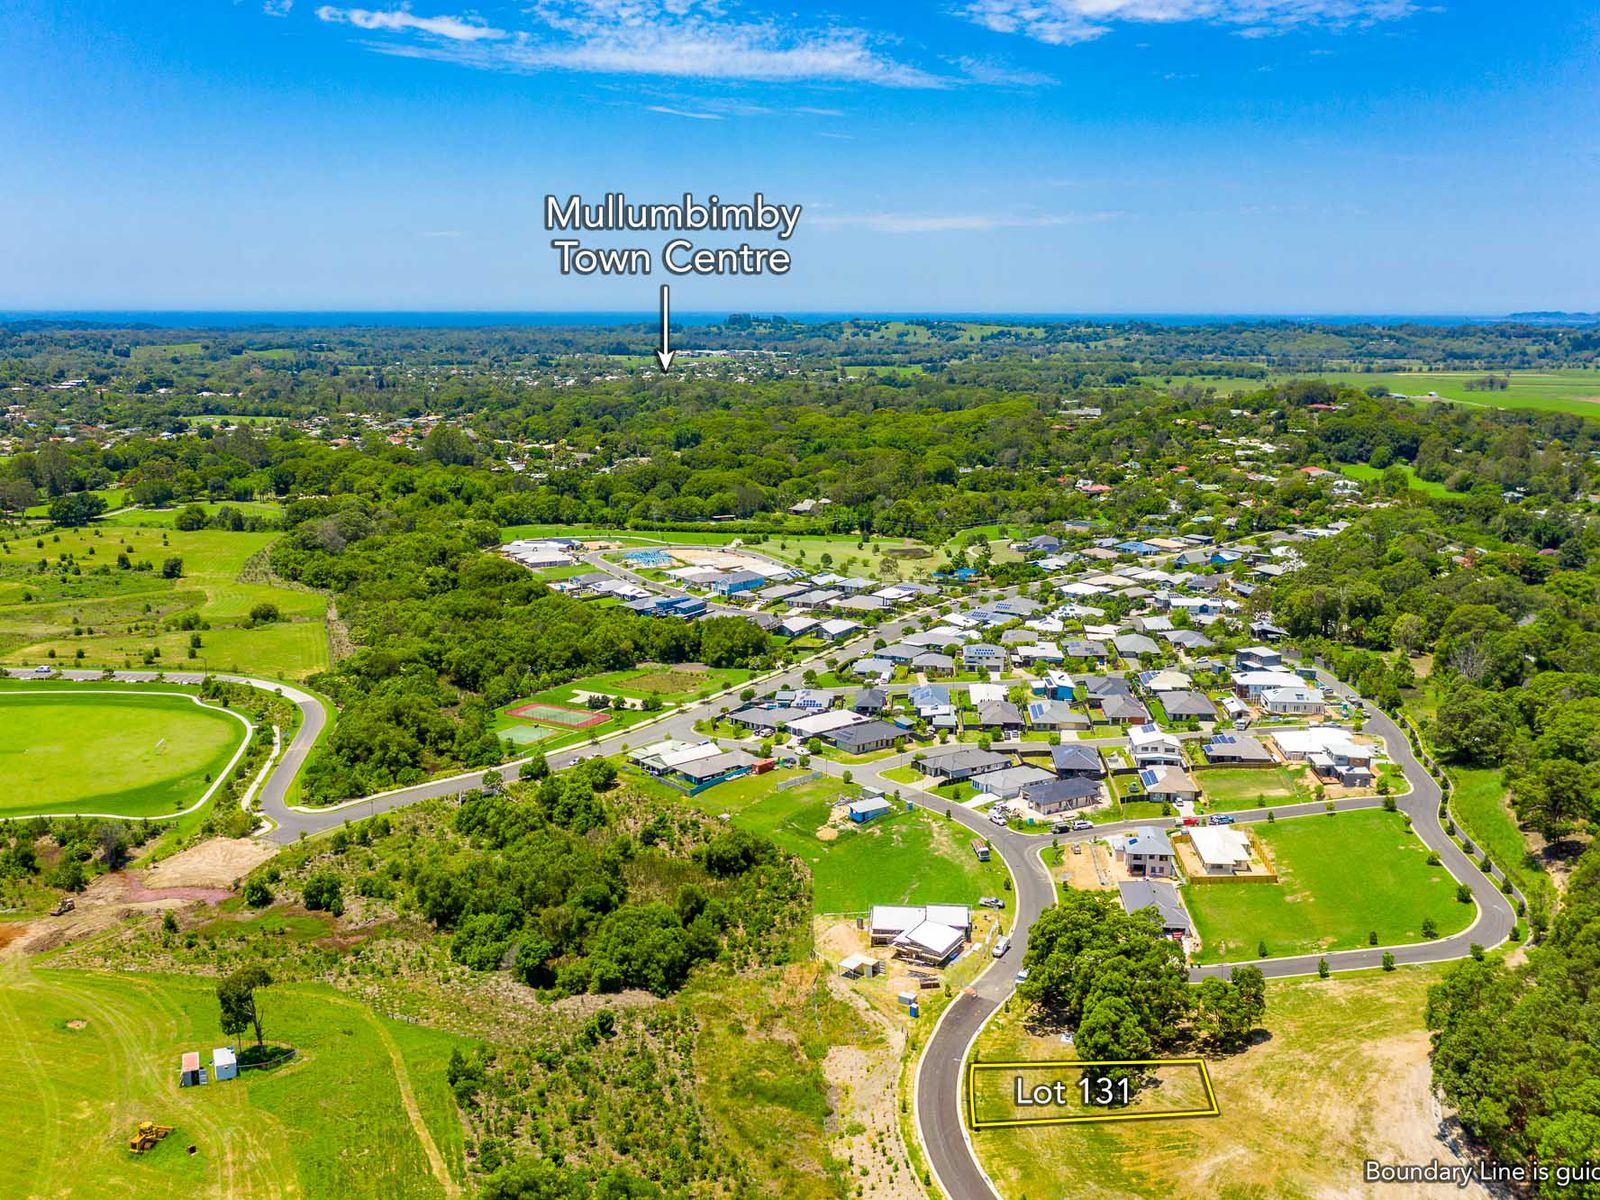 Lot 131, Lorikeet Lane, Mullumbimby